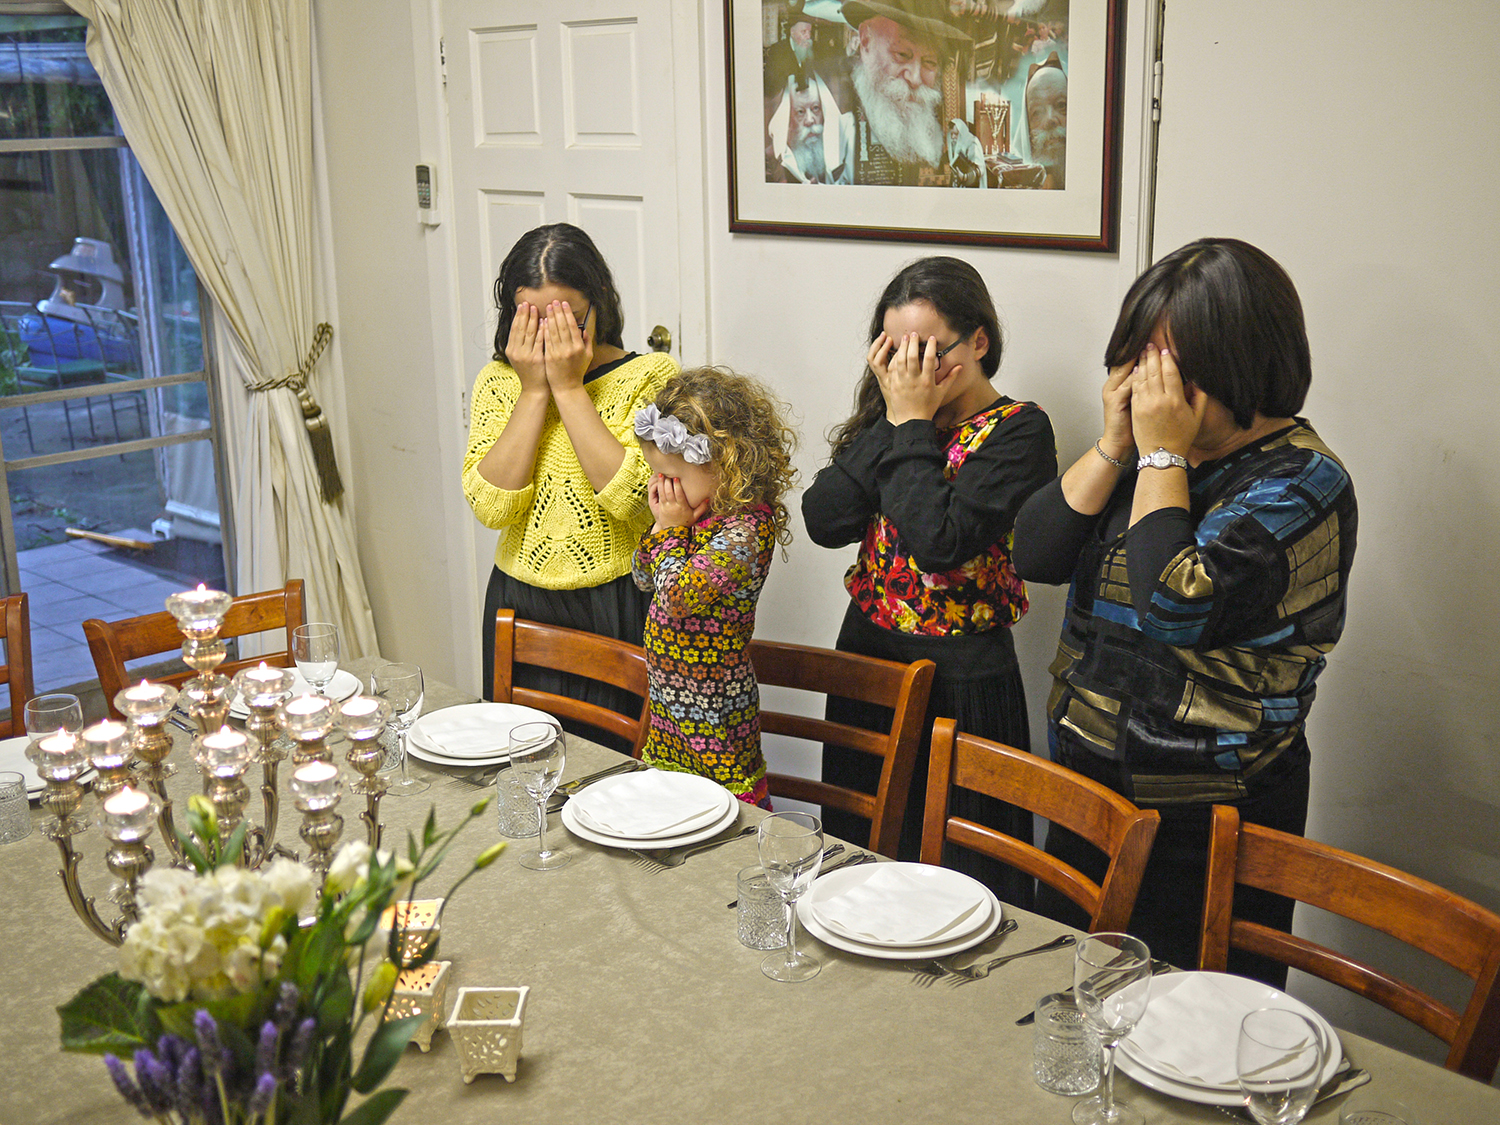 Three girls and a woman stand in front of settings at a dining table with their hands covering their eyes.